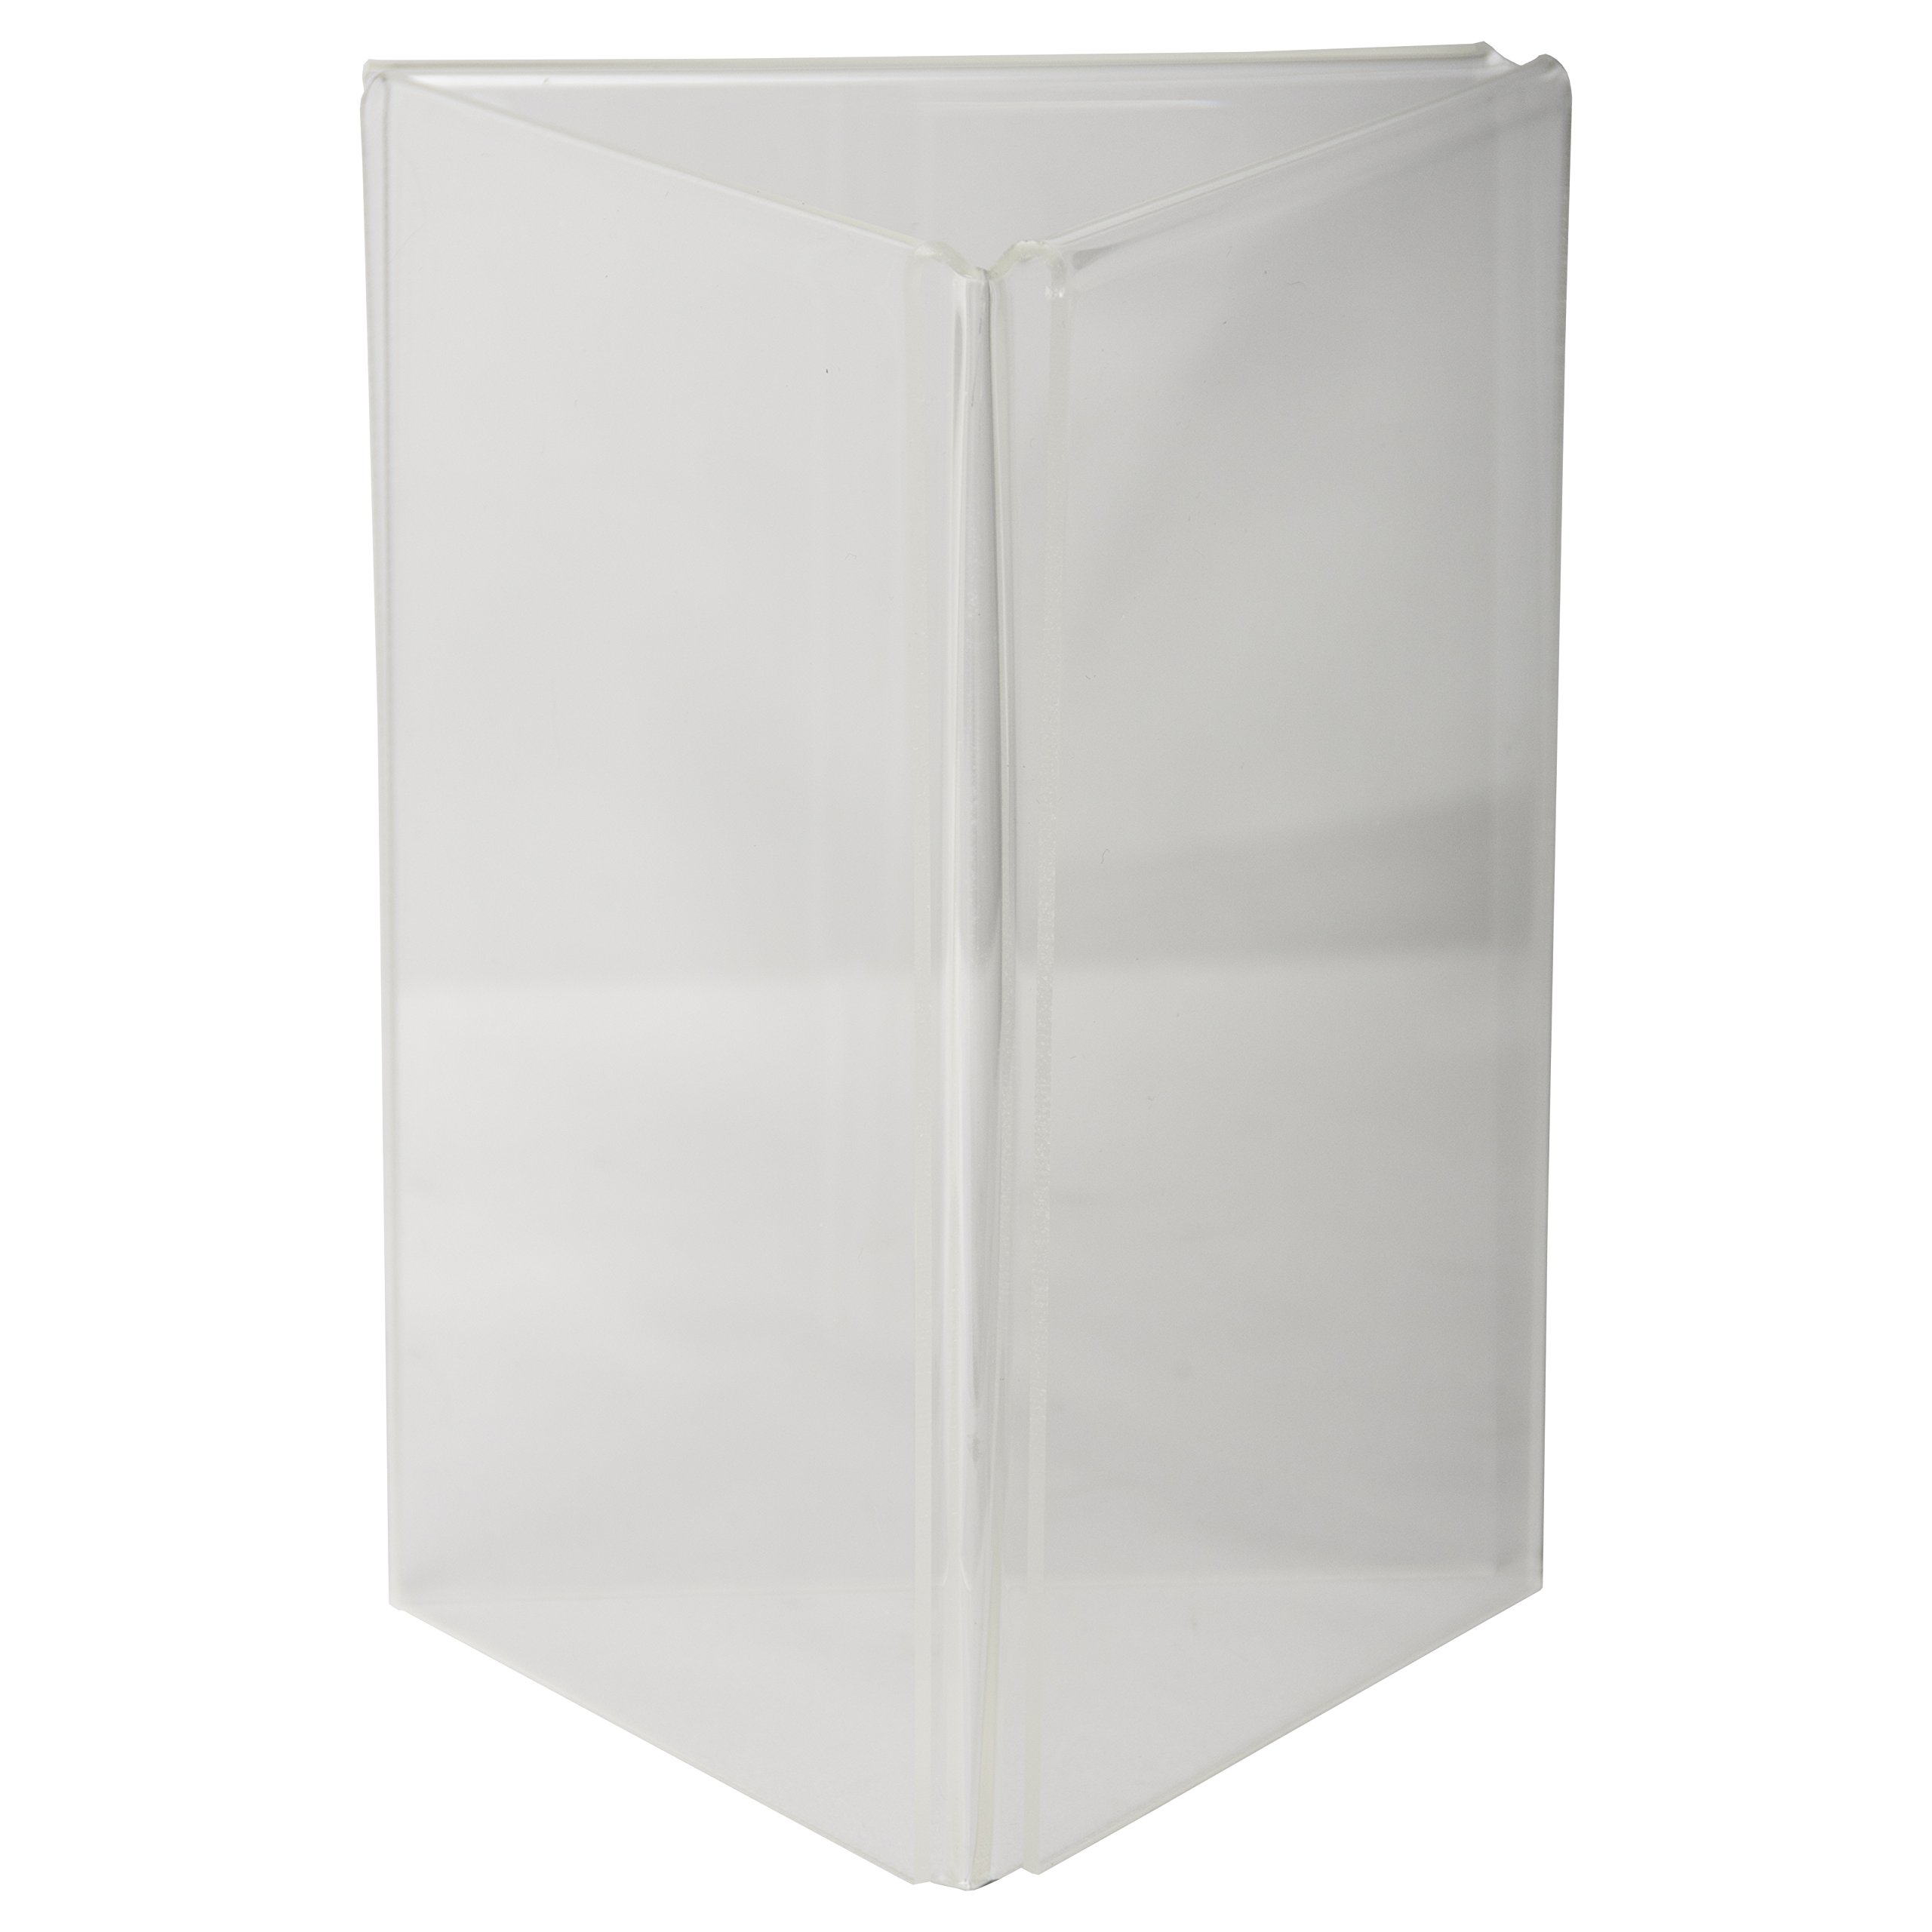 Clear-Ad - LHE-57 - Acrylic 3-Sided Table Tent Menu Holder 5x7 (Pack of 3)